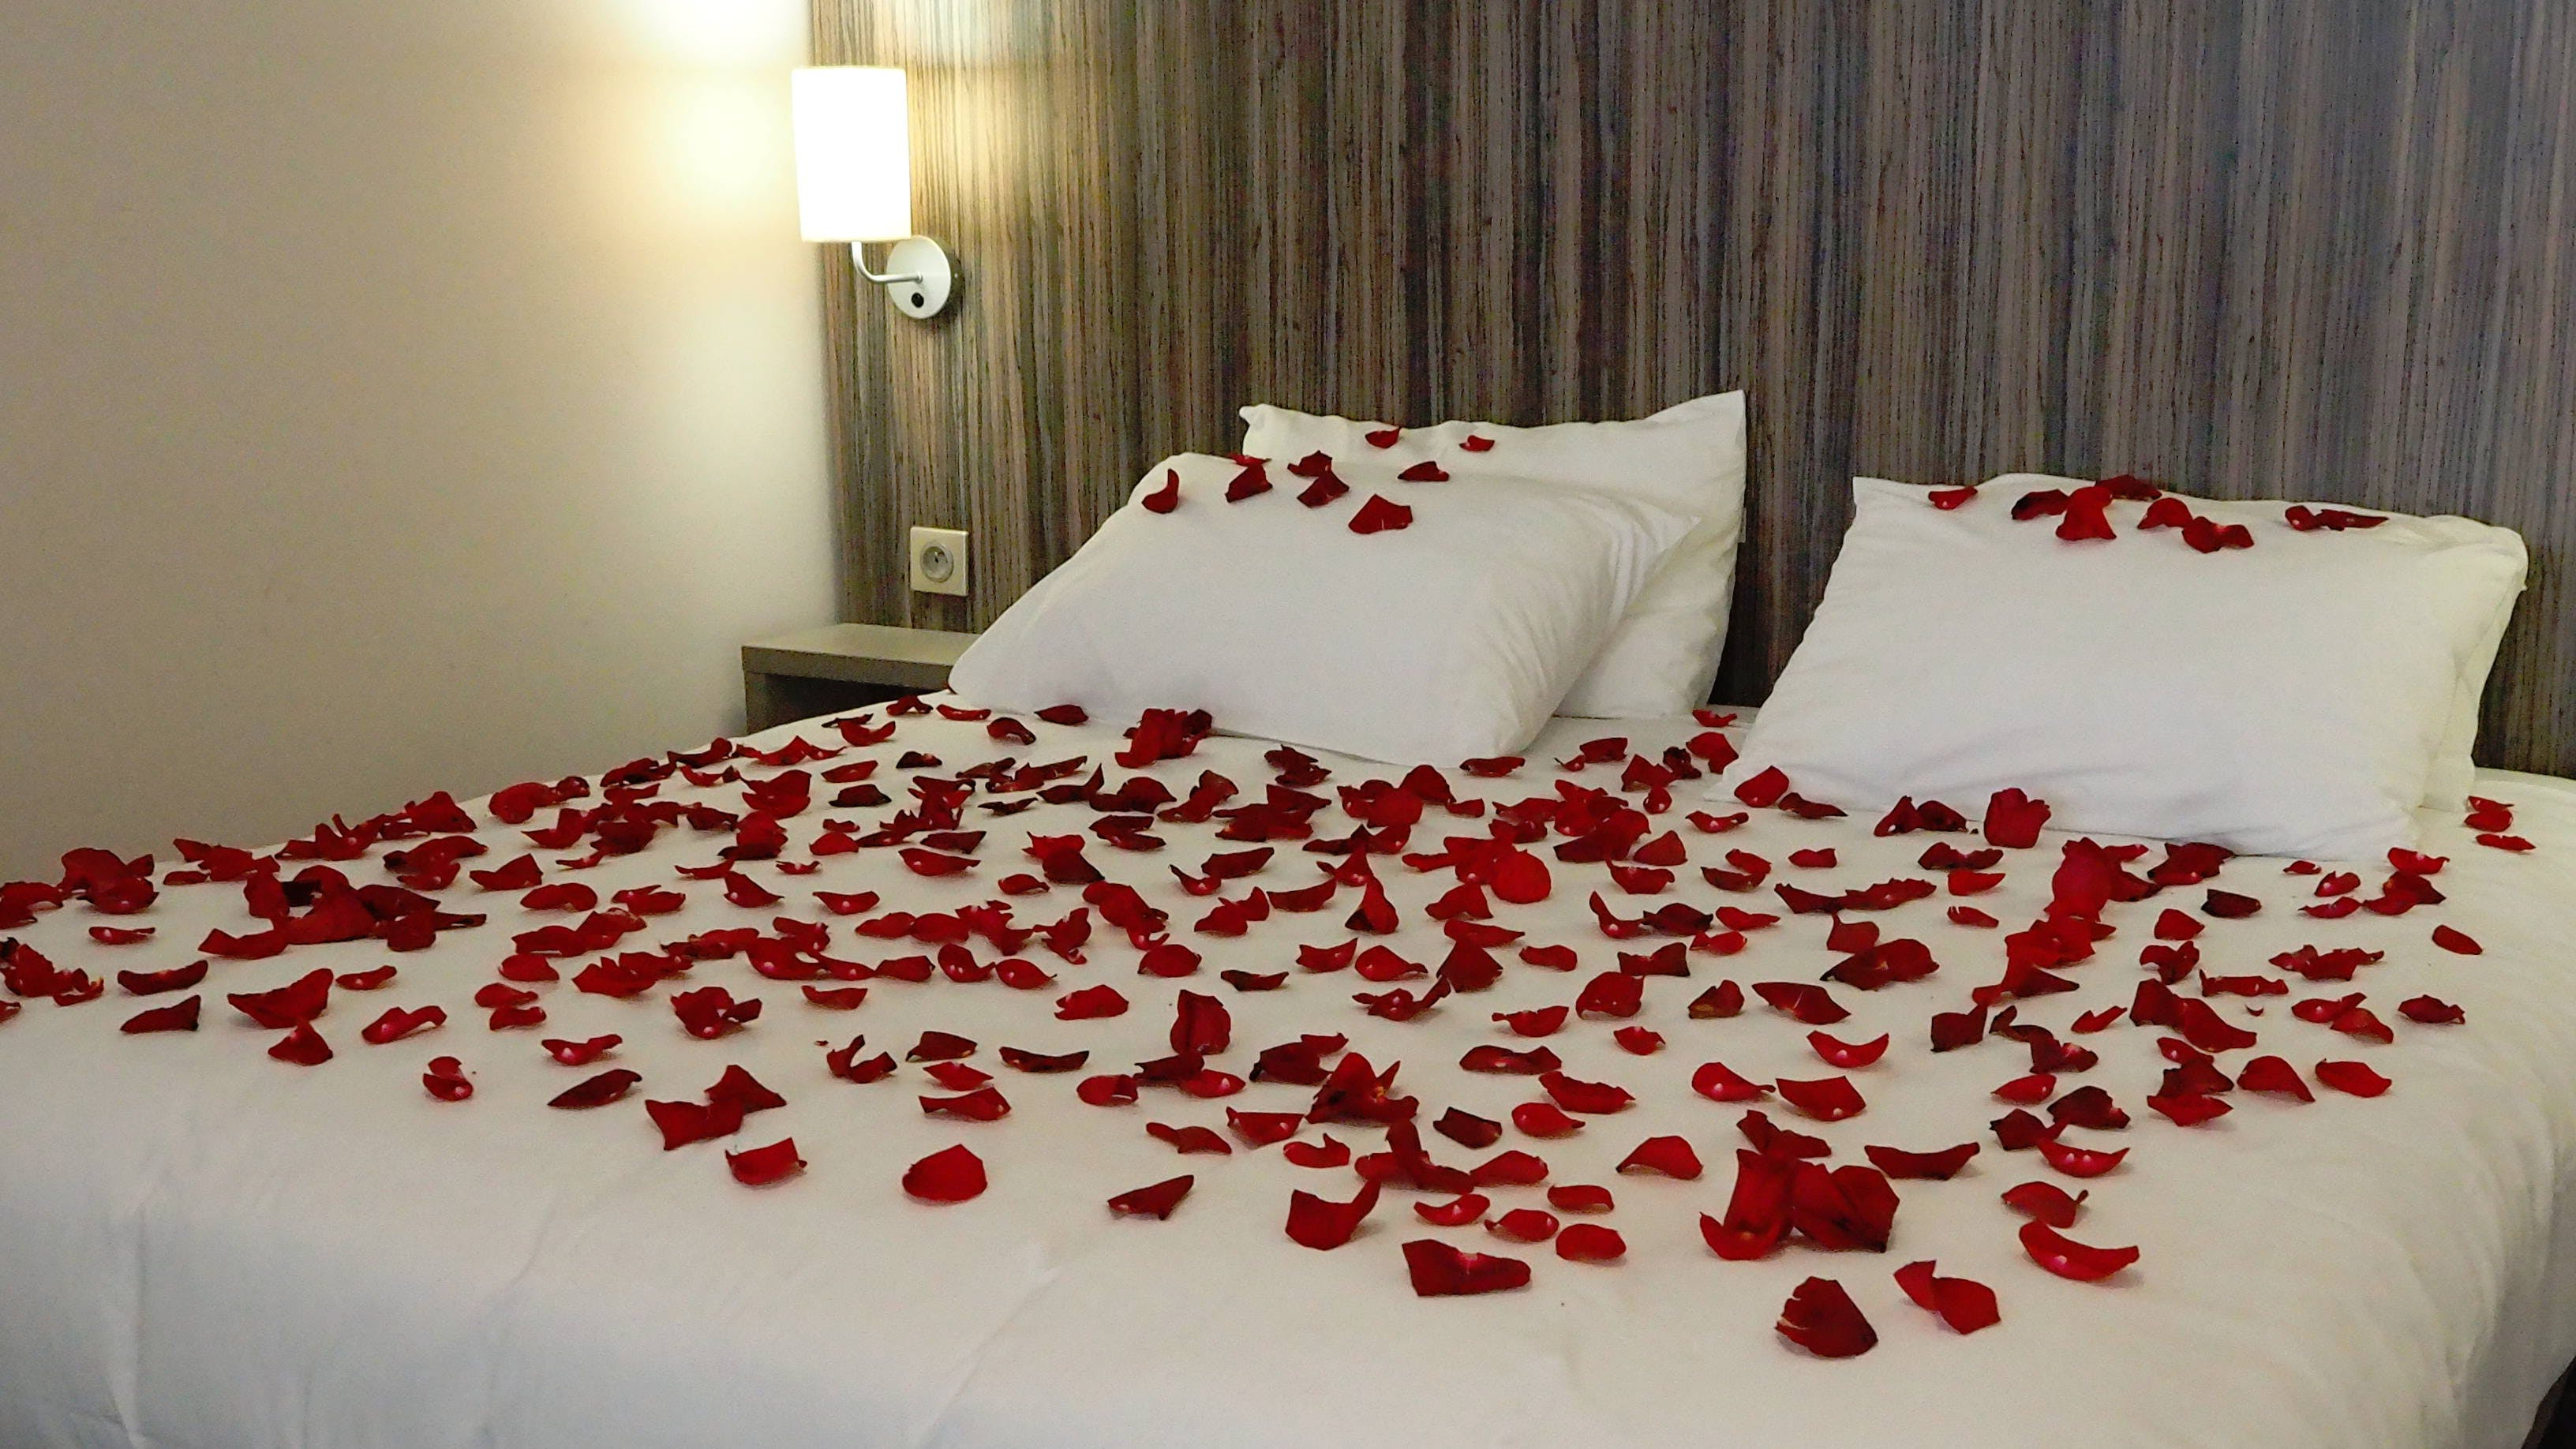 lit de pétales de roses pour un séjour romantique à Eclipse, rose petal bed for a romantic stay at Eclipse